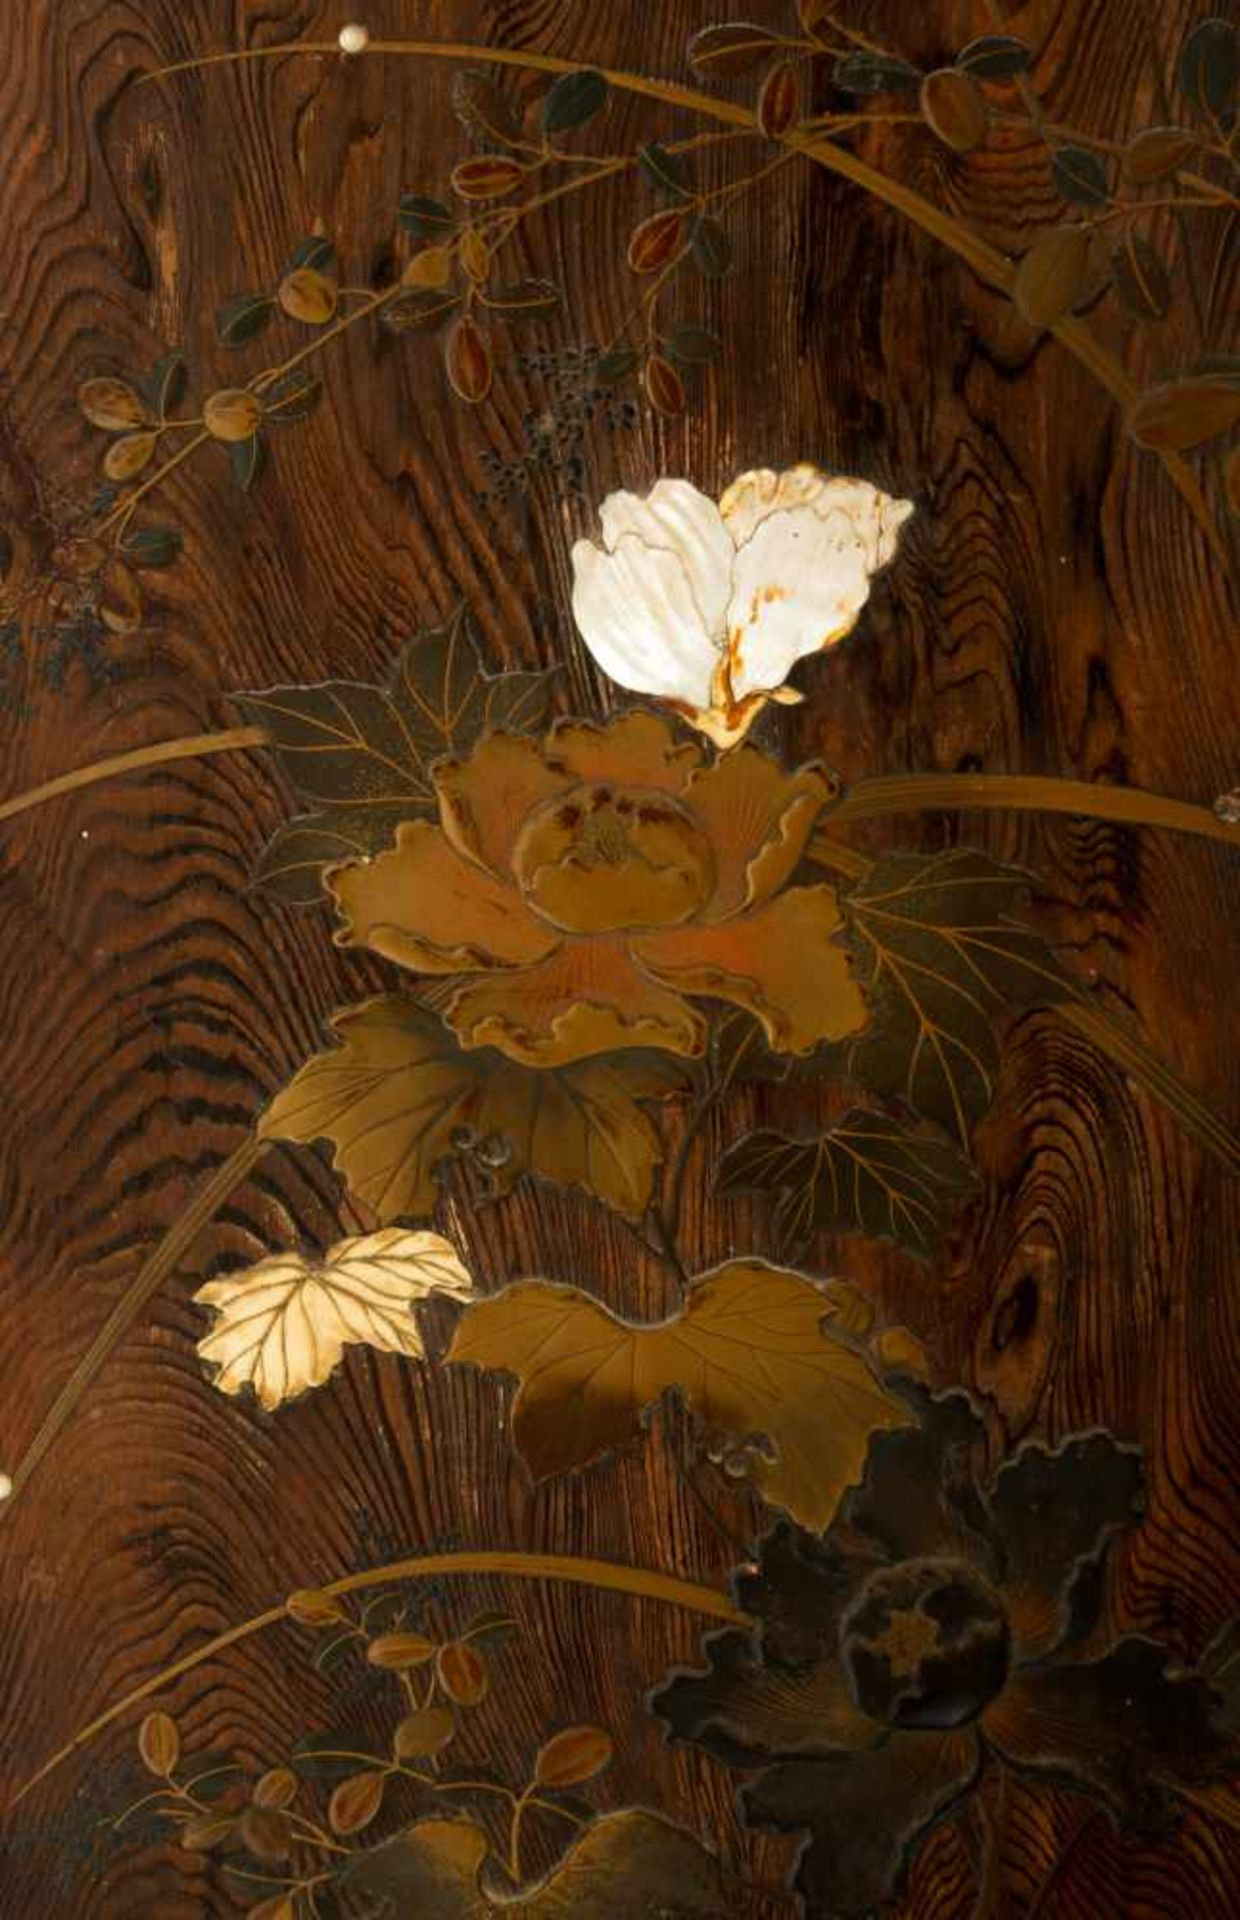 Los 33 - Attributed to Shibata Zeshin (Tokyo, 1807 - 1891)A magnificent rectangular panel polished to re